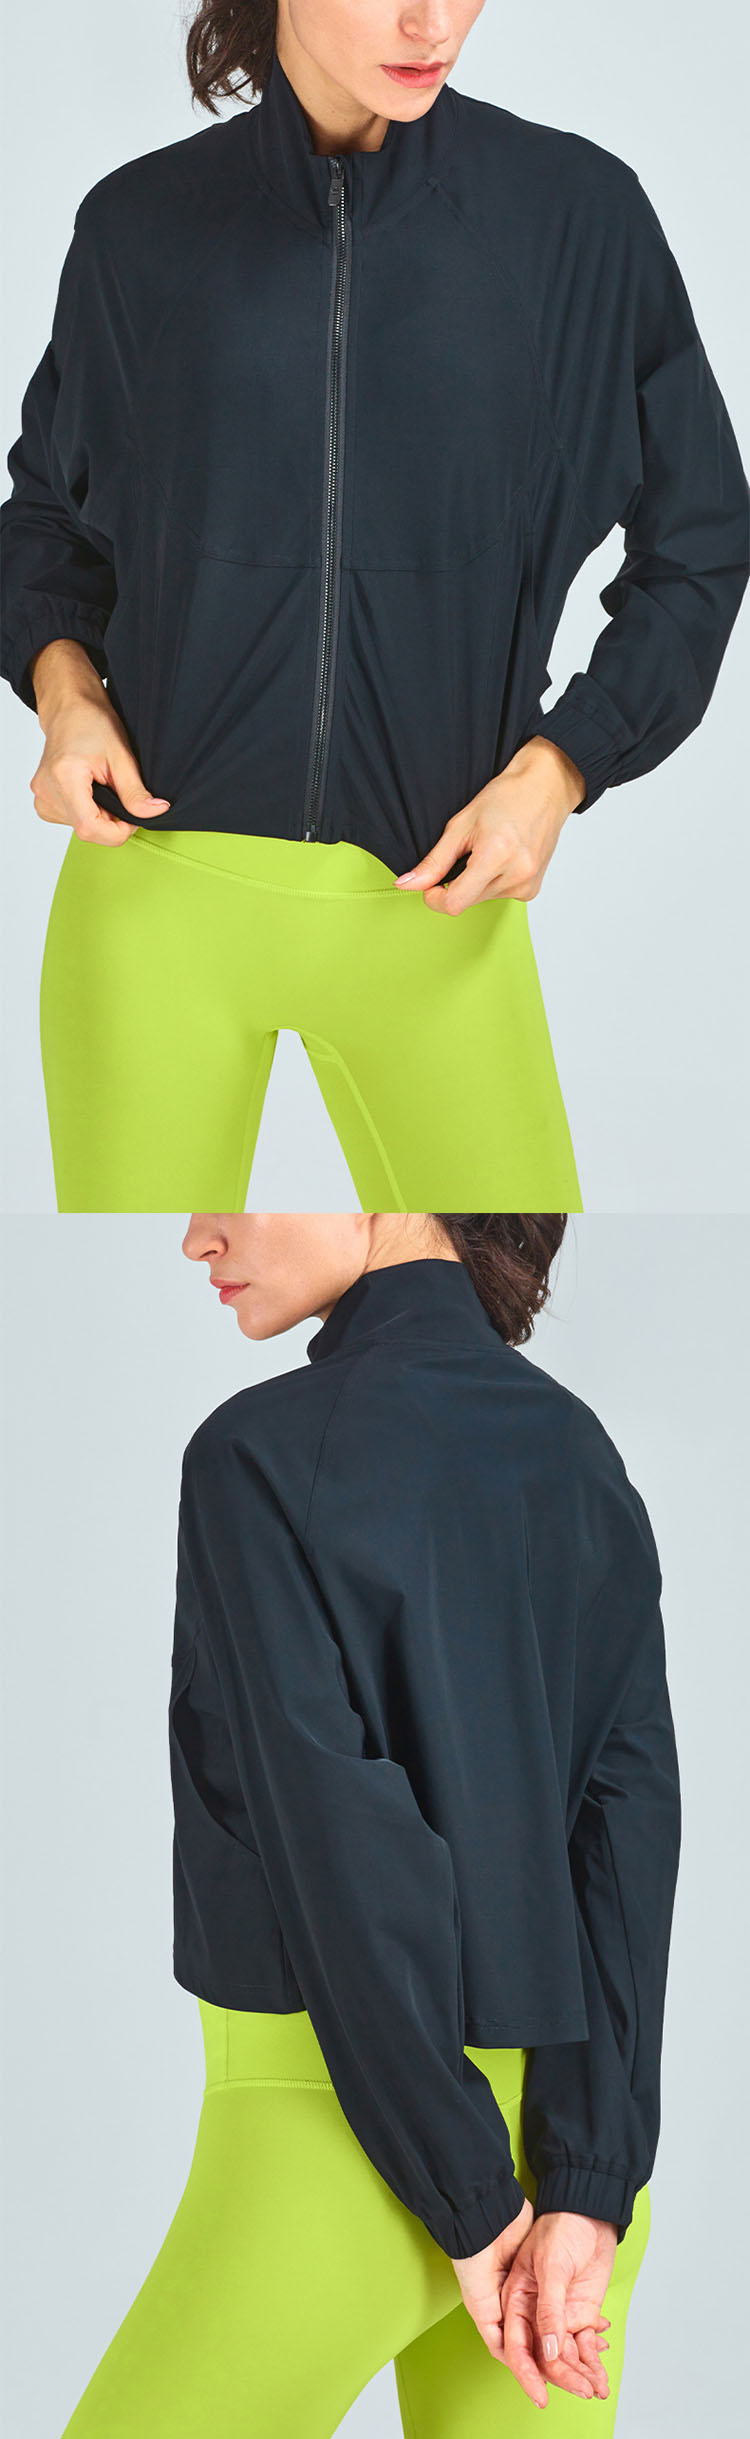 Loose version design, comfortable and tight-fitting, close to the body.